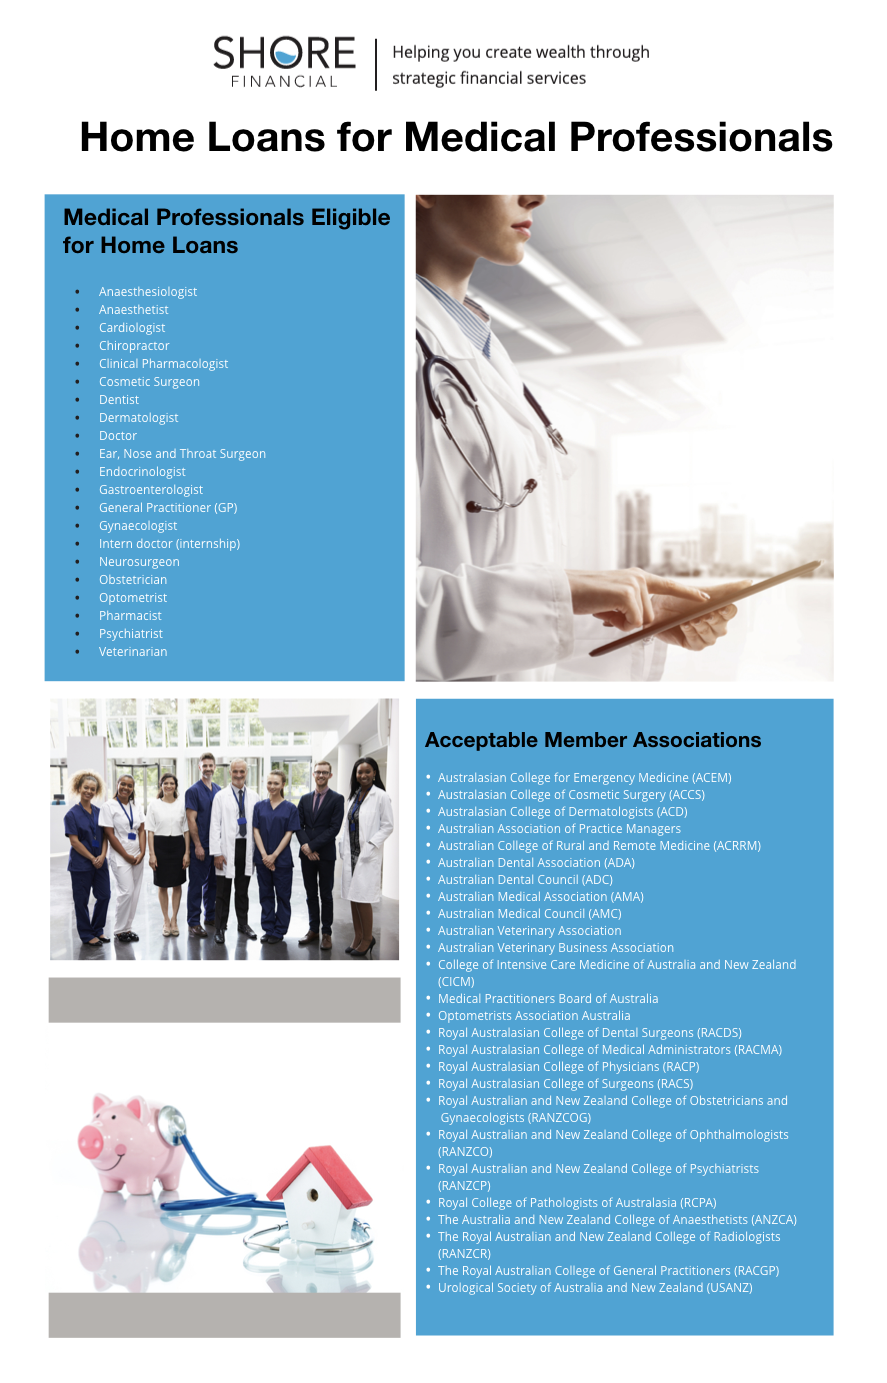 Home Loans for Medical Professionals